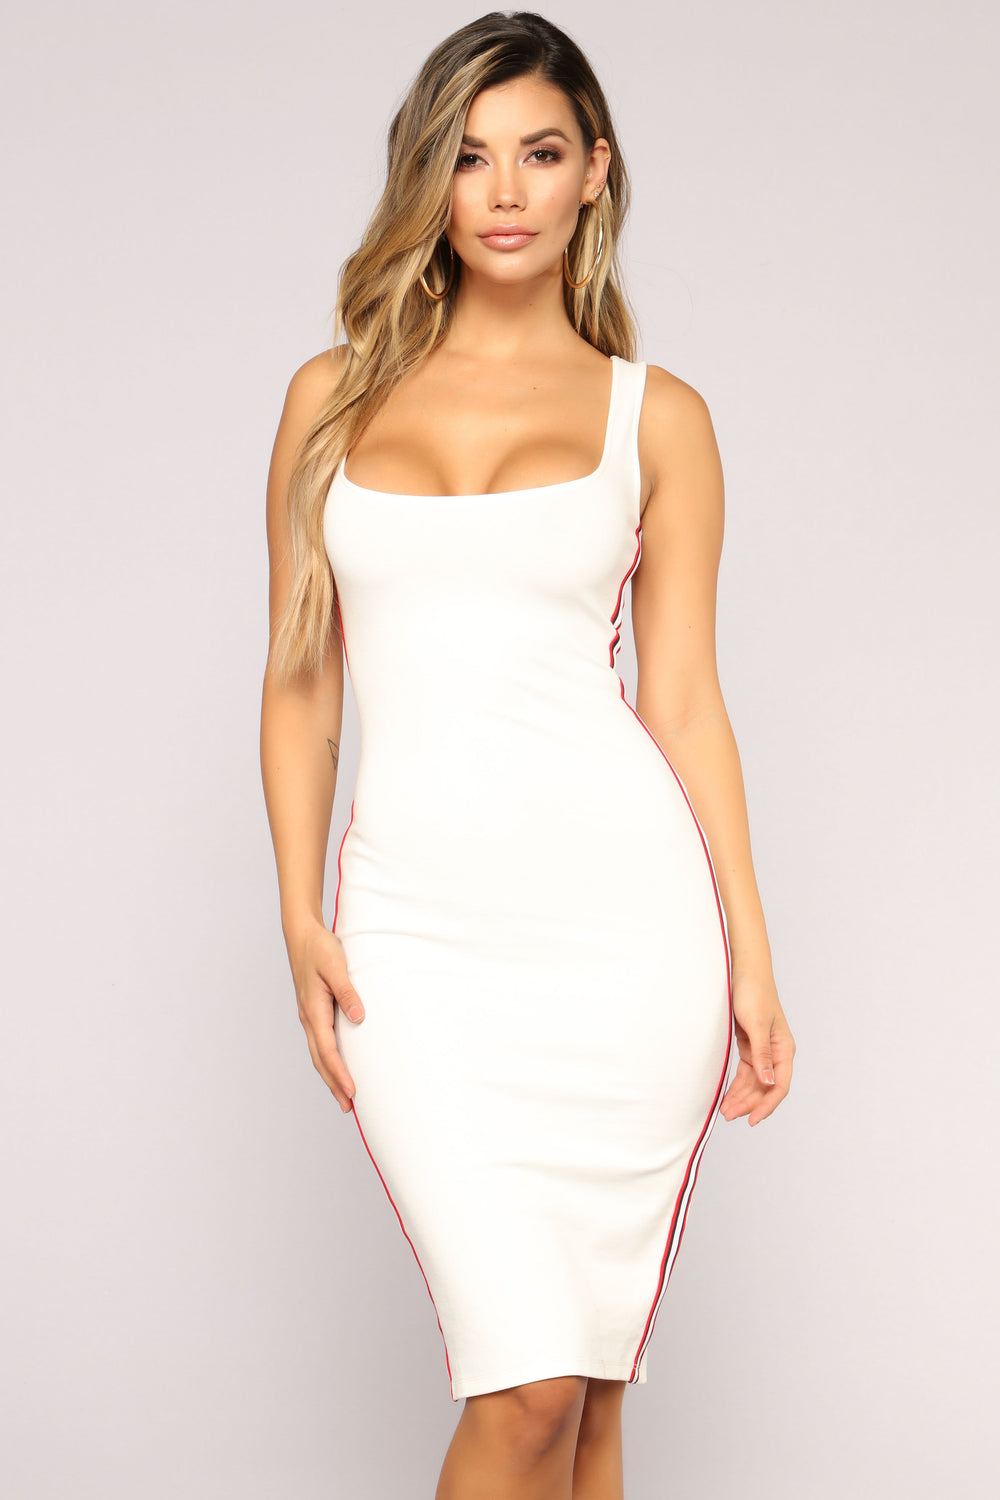 Memory Lane Dress - White